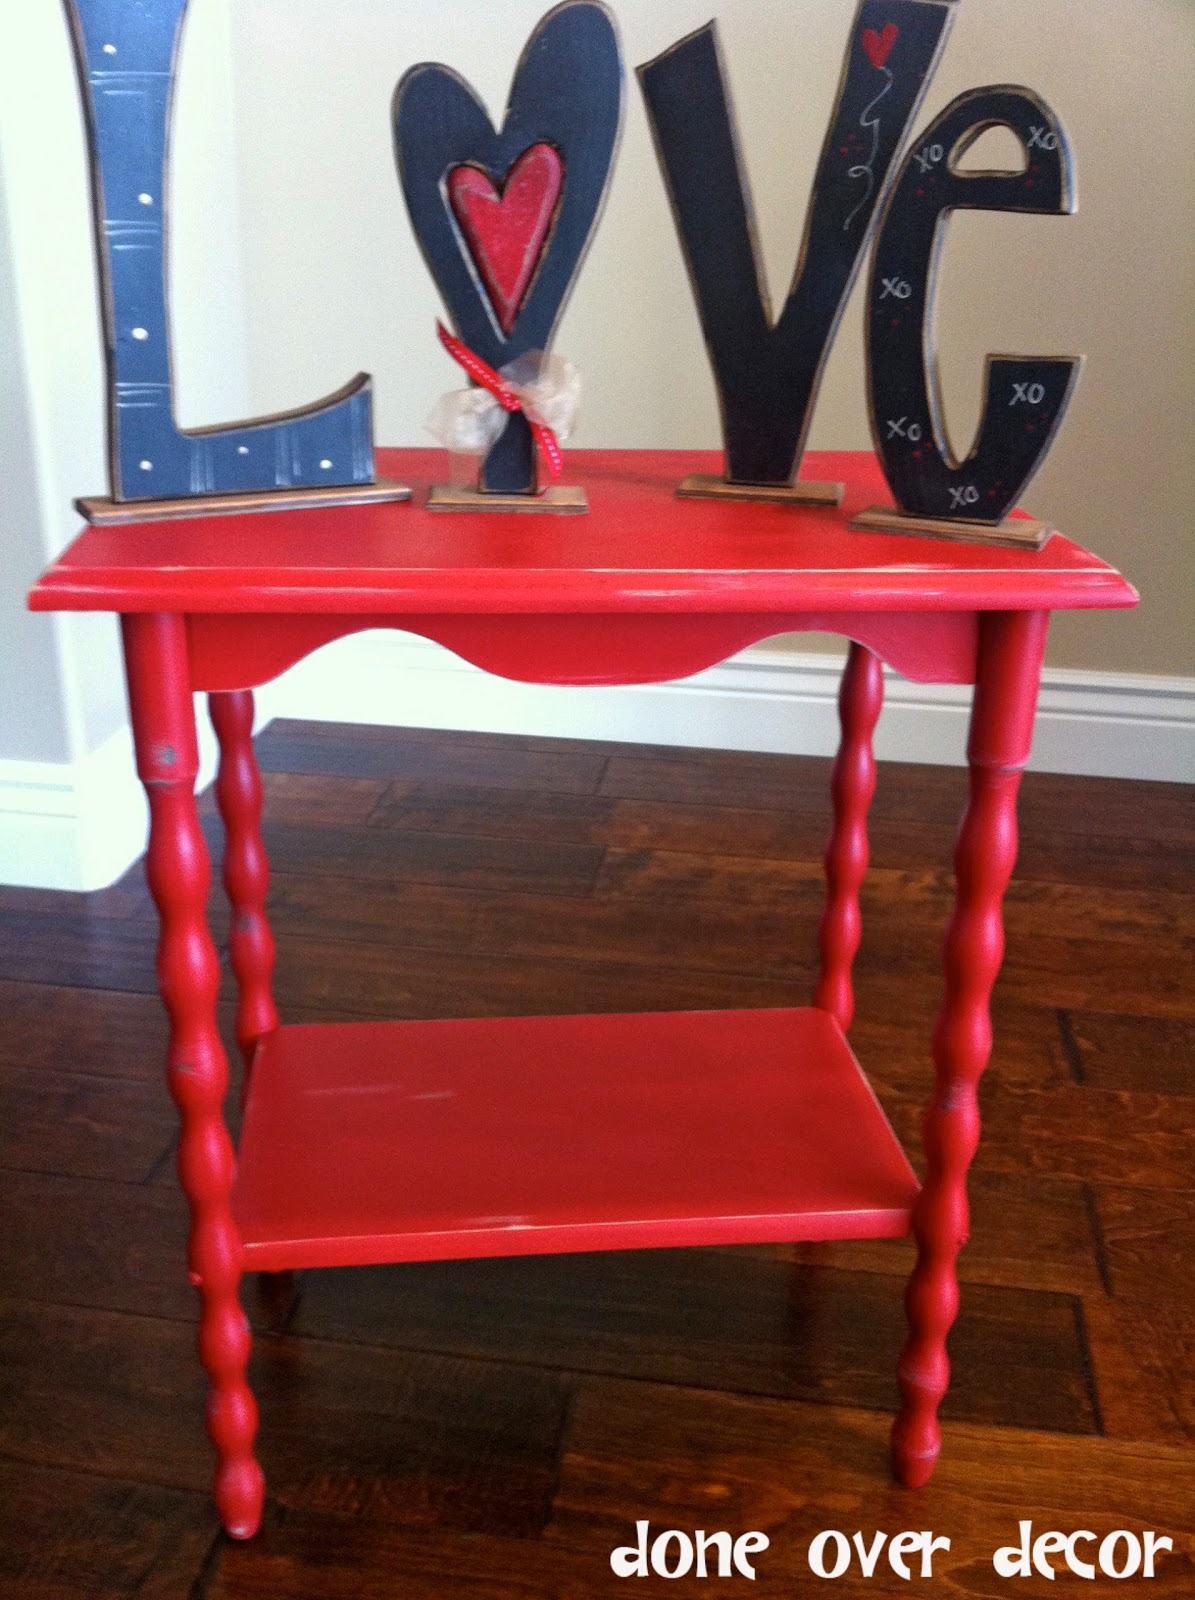 painted nest custom order red accent table industrial wood with drawers coffee tray ikea outdoor side stein world furniture target hourglass wrought iron occasional tables gold